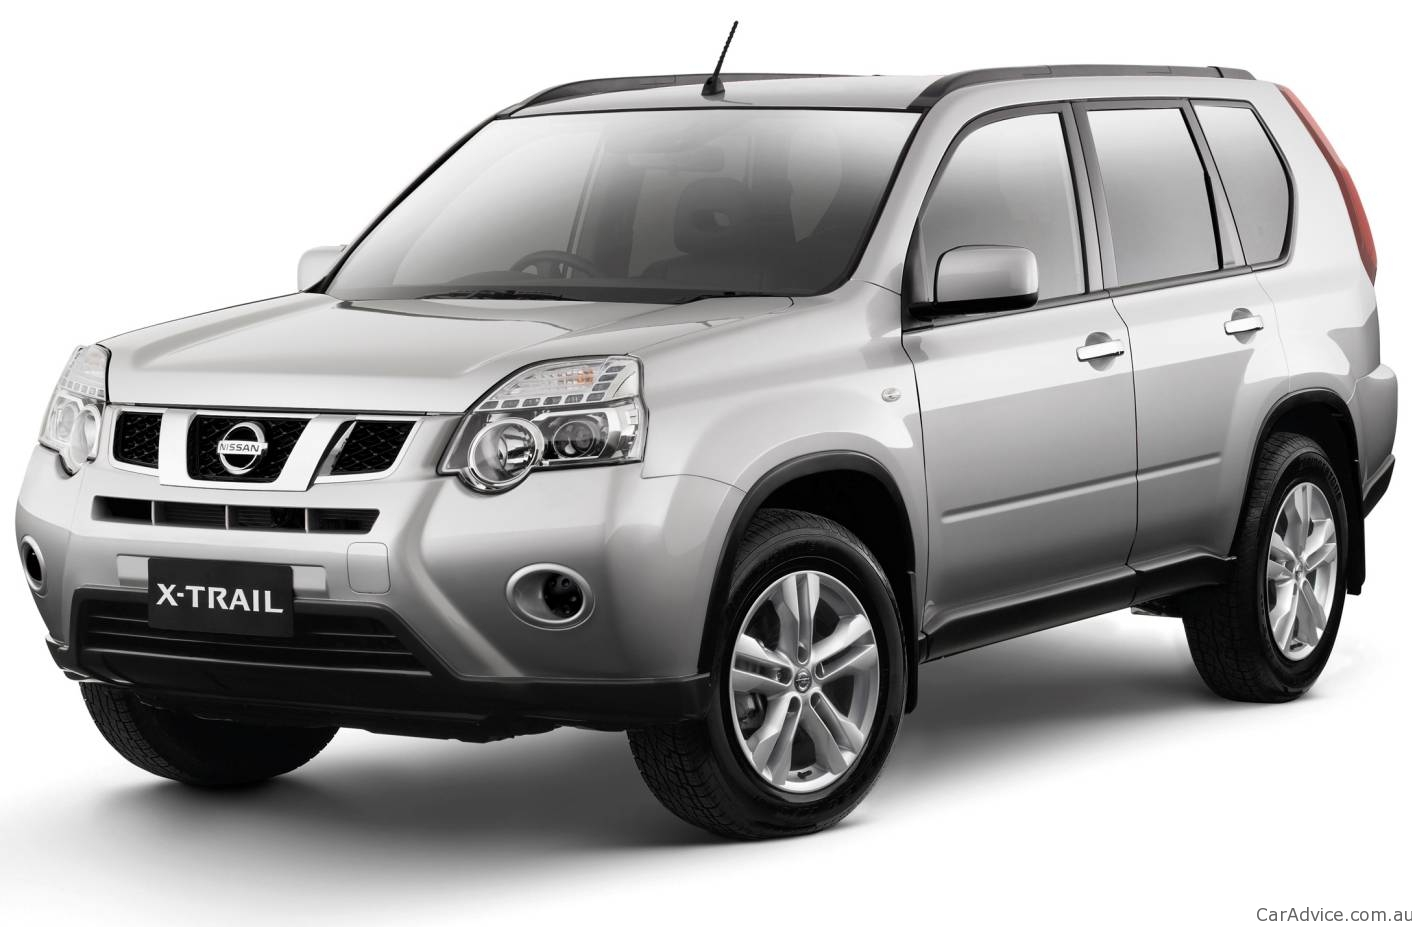 NISSAN X-TRAIL - Review and photos